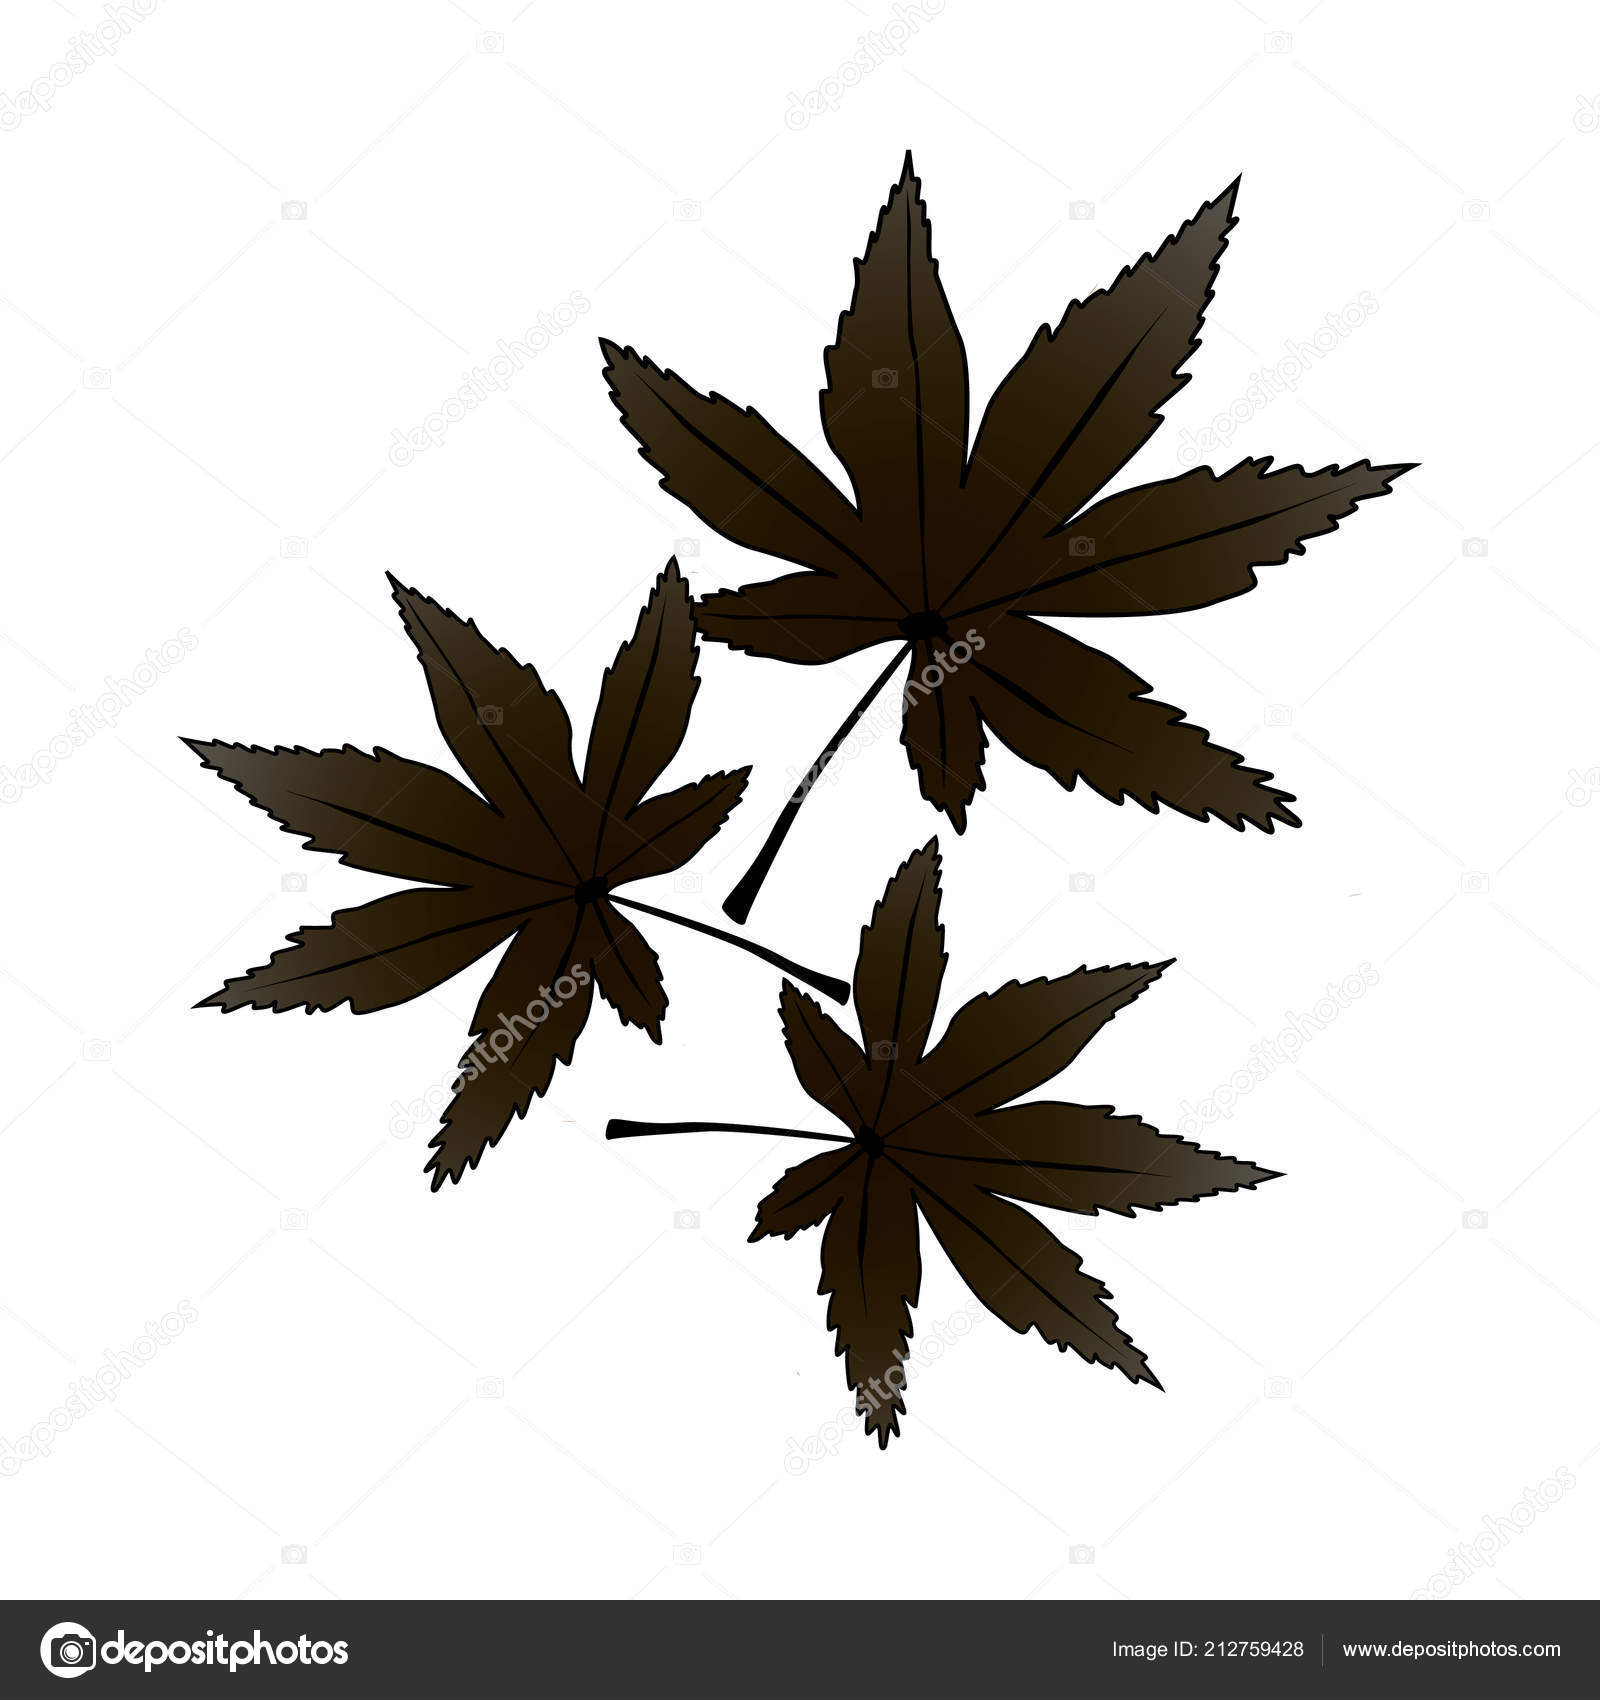 Maple Leaf Vector Icon Leaf Illustration Canada Symbol Black Maple